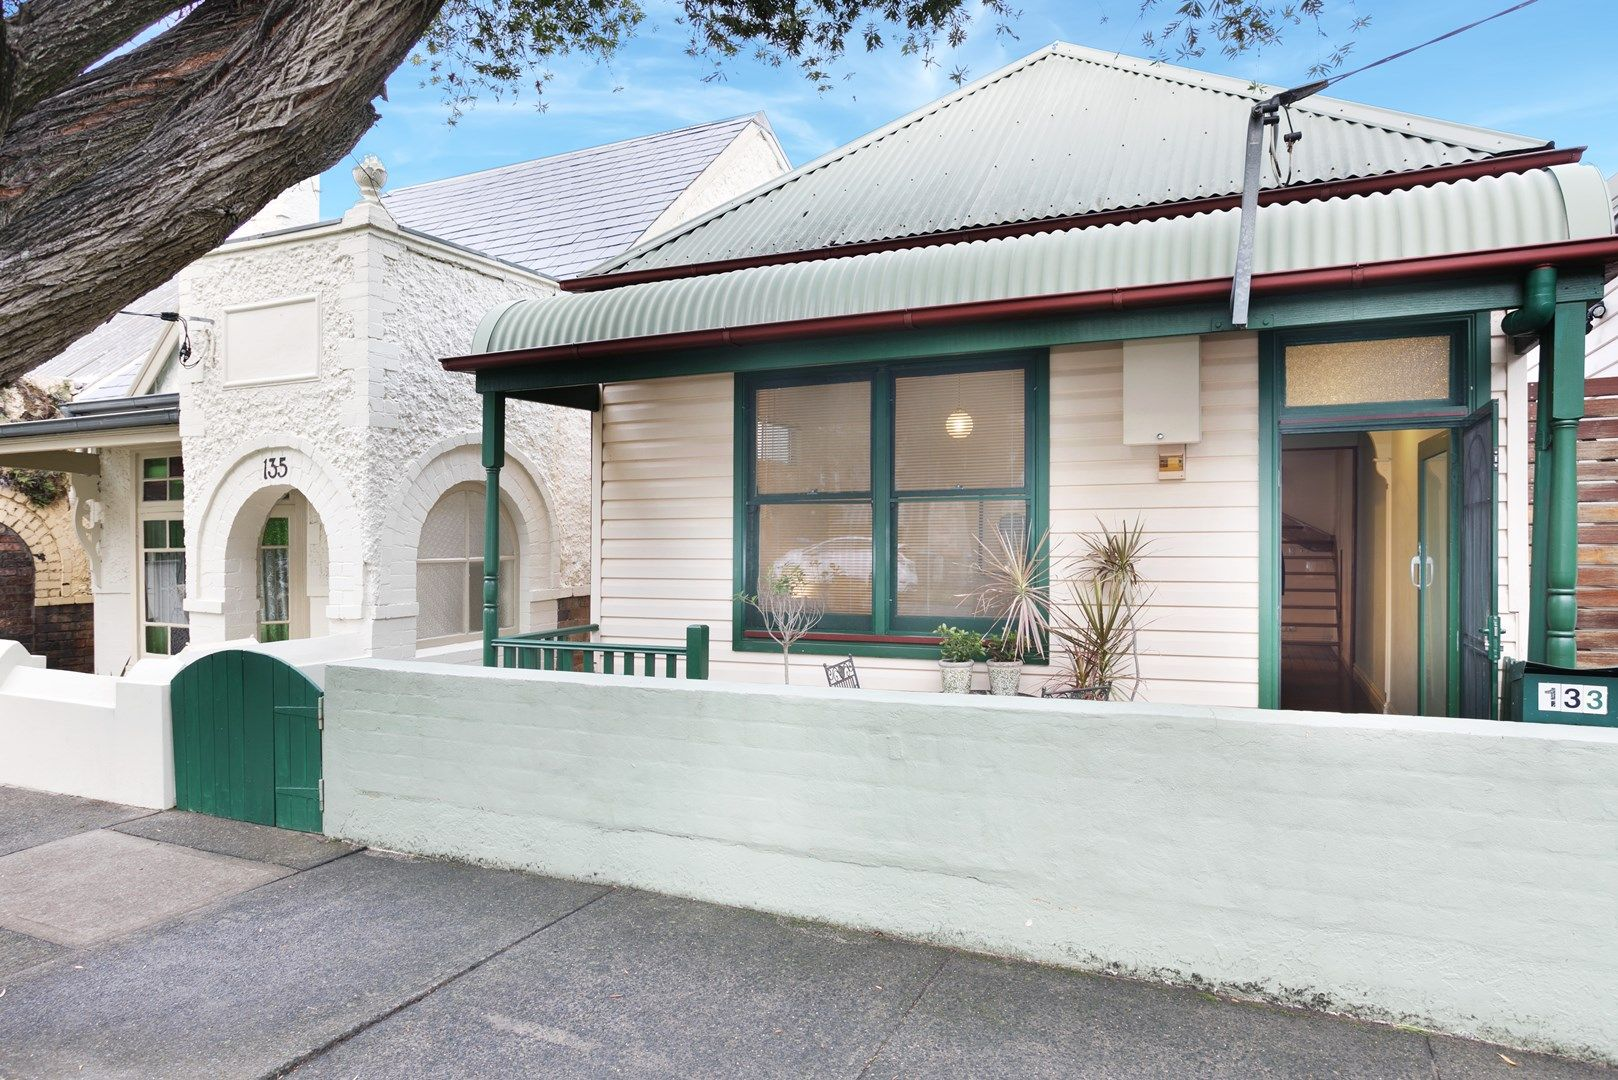 133 View  Street, Annandale NSW 2038, Image 0